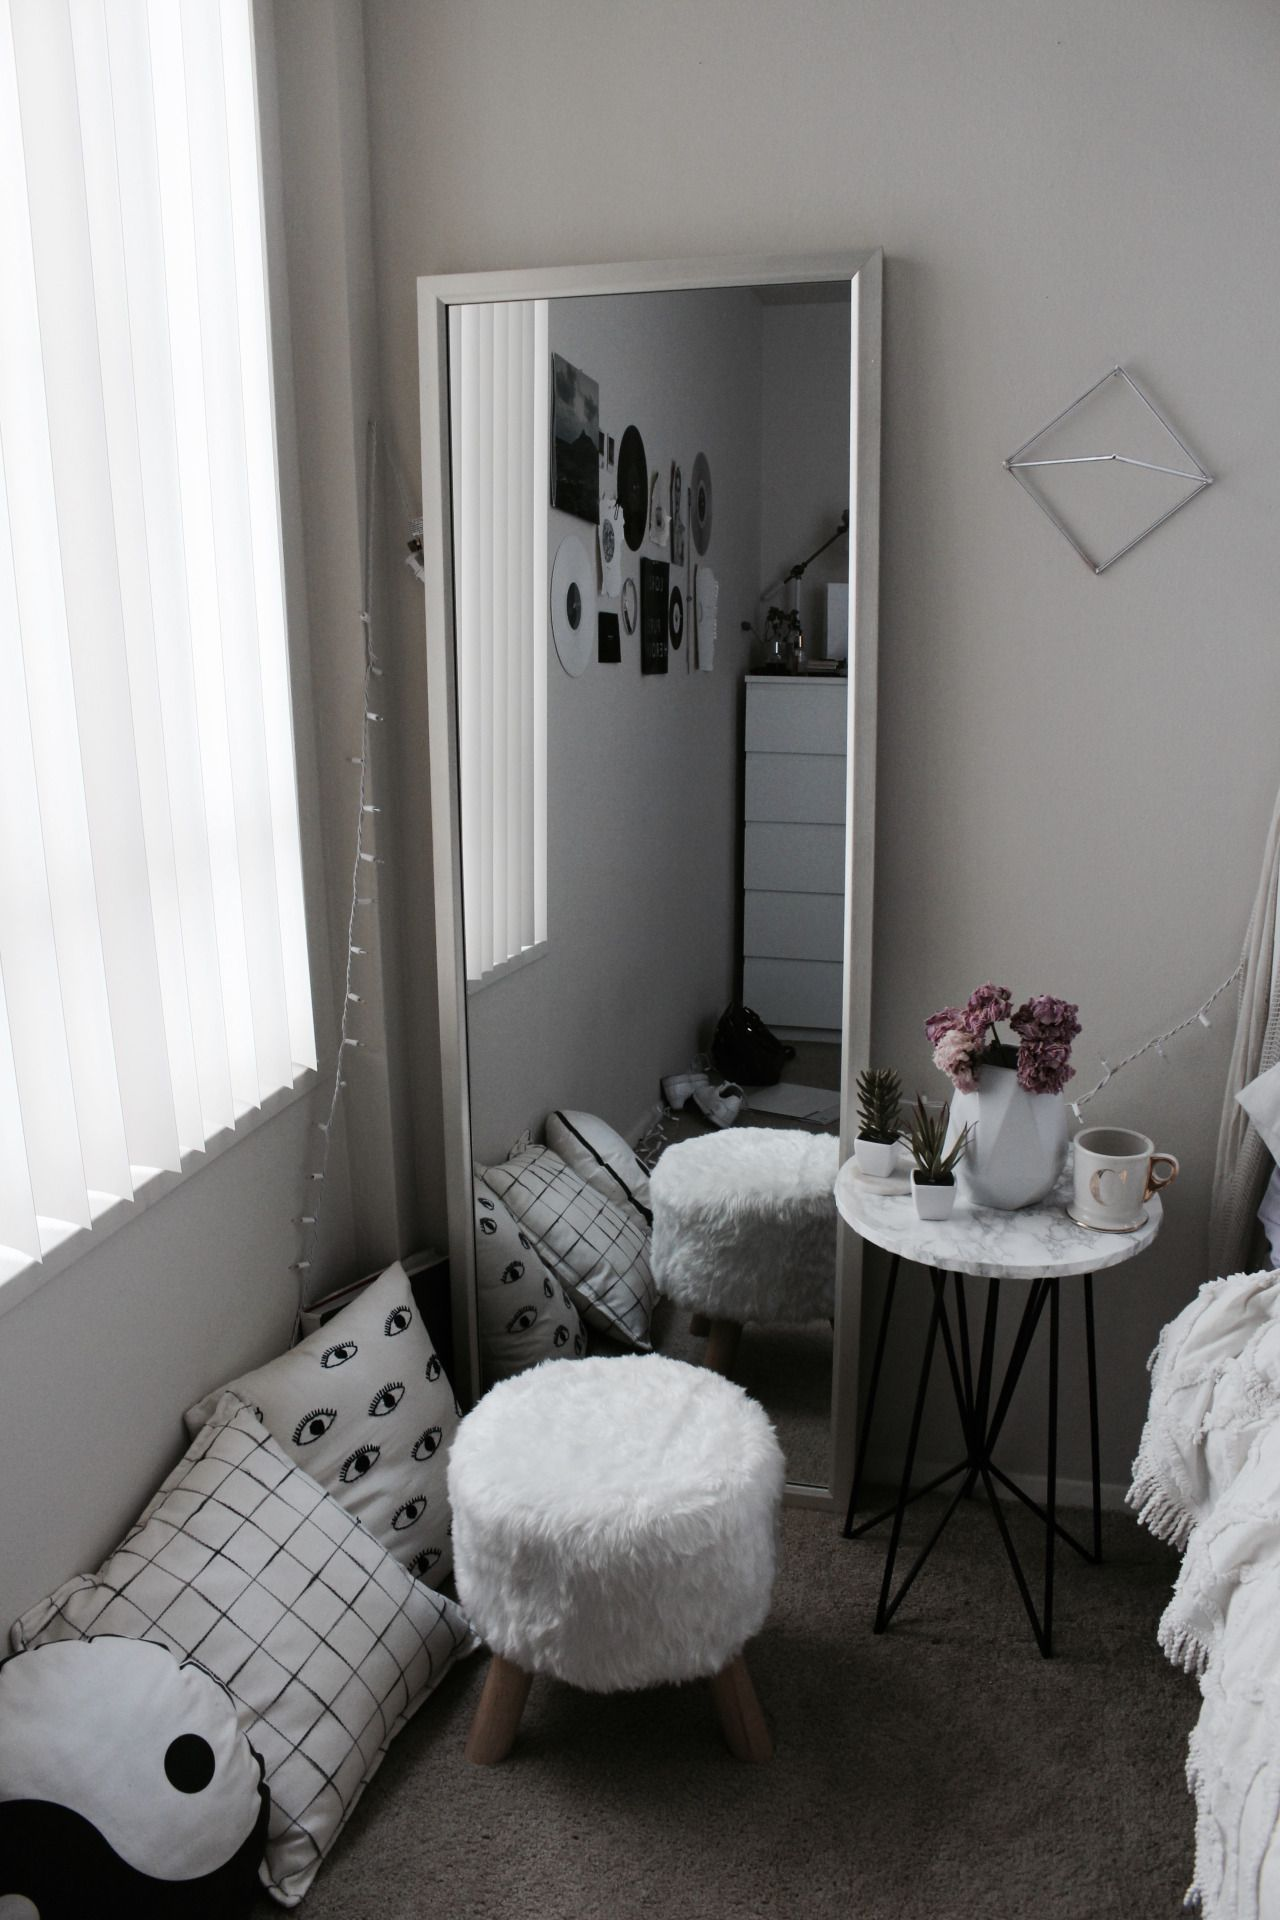 Bedrooms Tumblr Tumblr Bedrooms Bed Room Decoración De Habitaciones